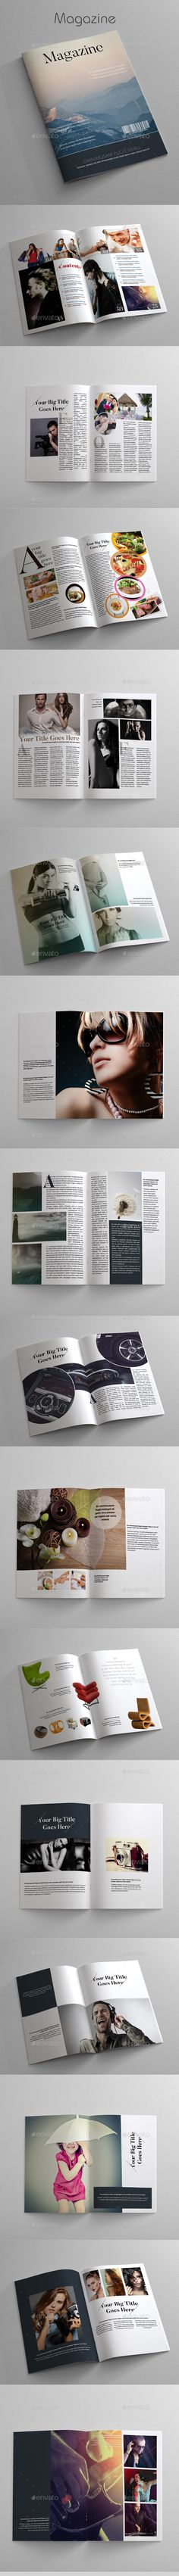 Magazine by azadcsstune MagazineCompletely editable, print ready & Leter 32 pagesText/Font or Color can be altered as needed Inculed 2 INDD, 2 IDML and Magazine Cover Template, Indesign Magazine Templates, Cool Magazine, Print Magazine, Lookbook Design, Magazine Design Inspiration, Layout, Drops Design, Print Templates